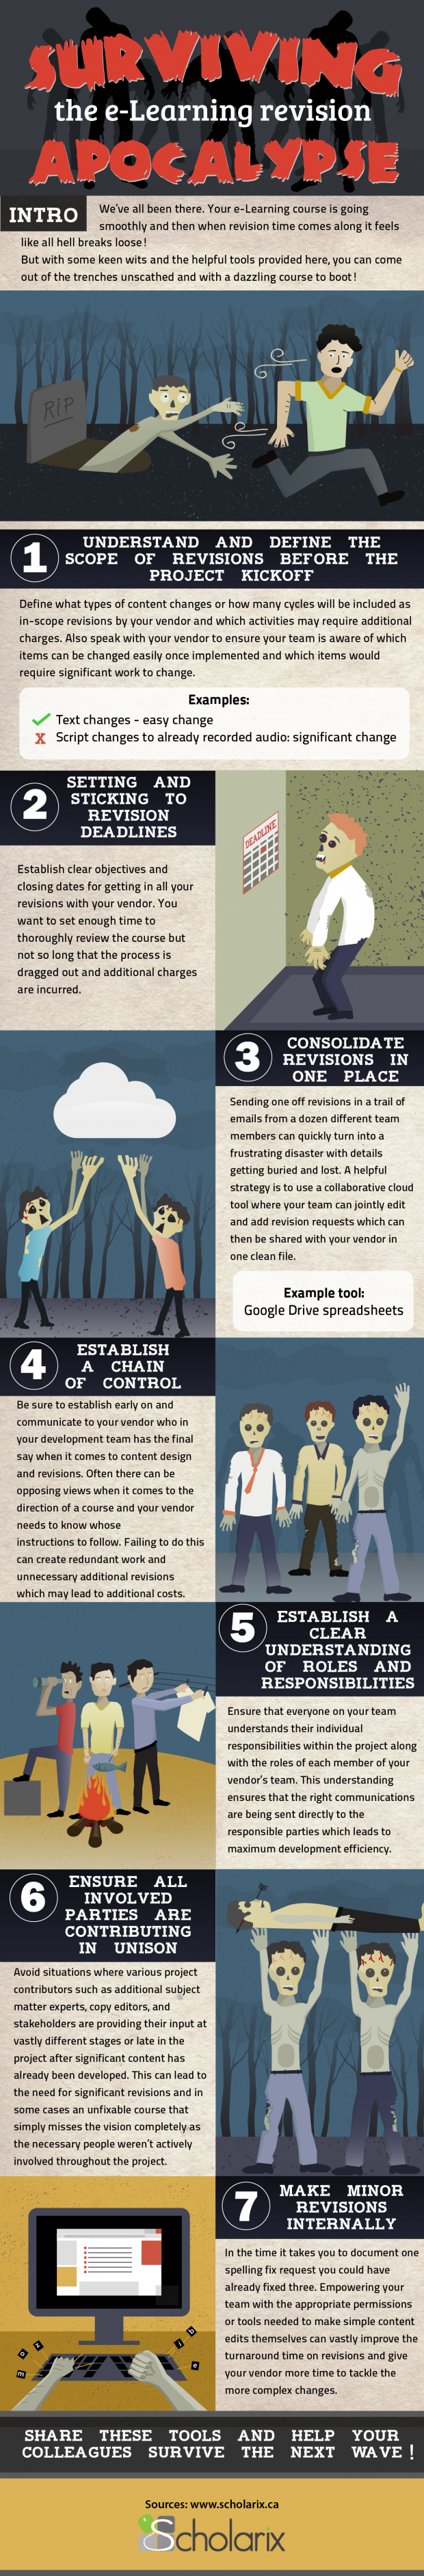 zombie_apocalypse_e-Learning_revisions